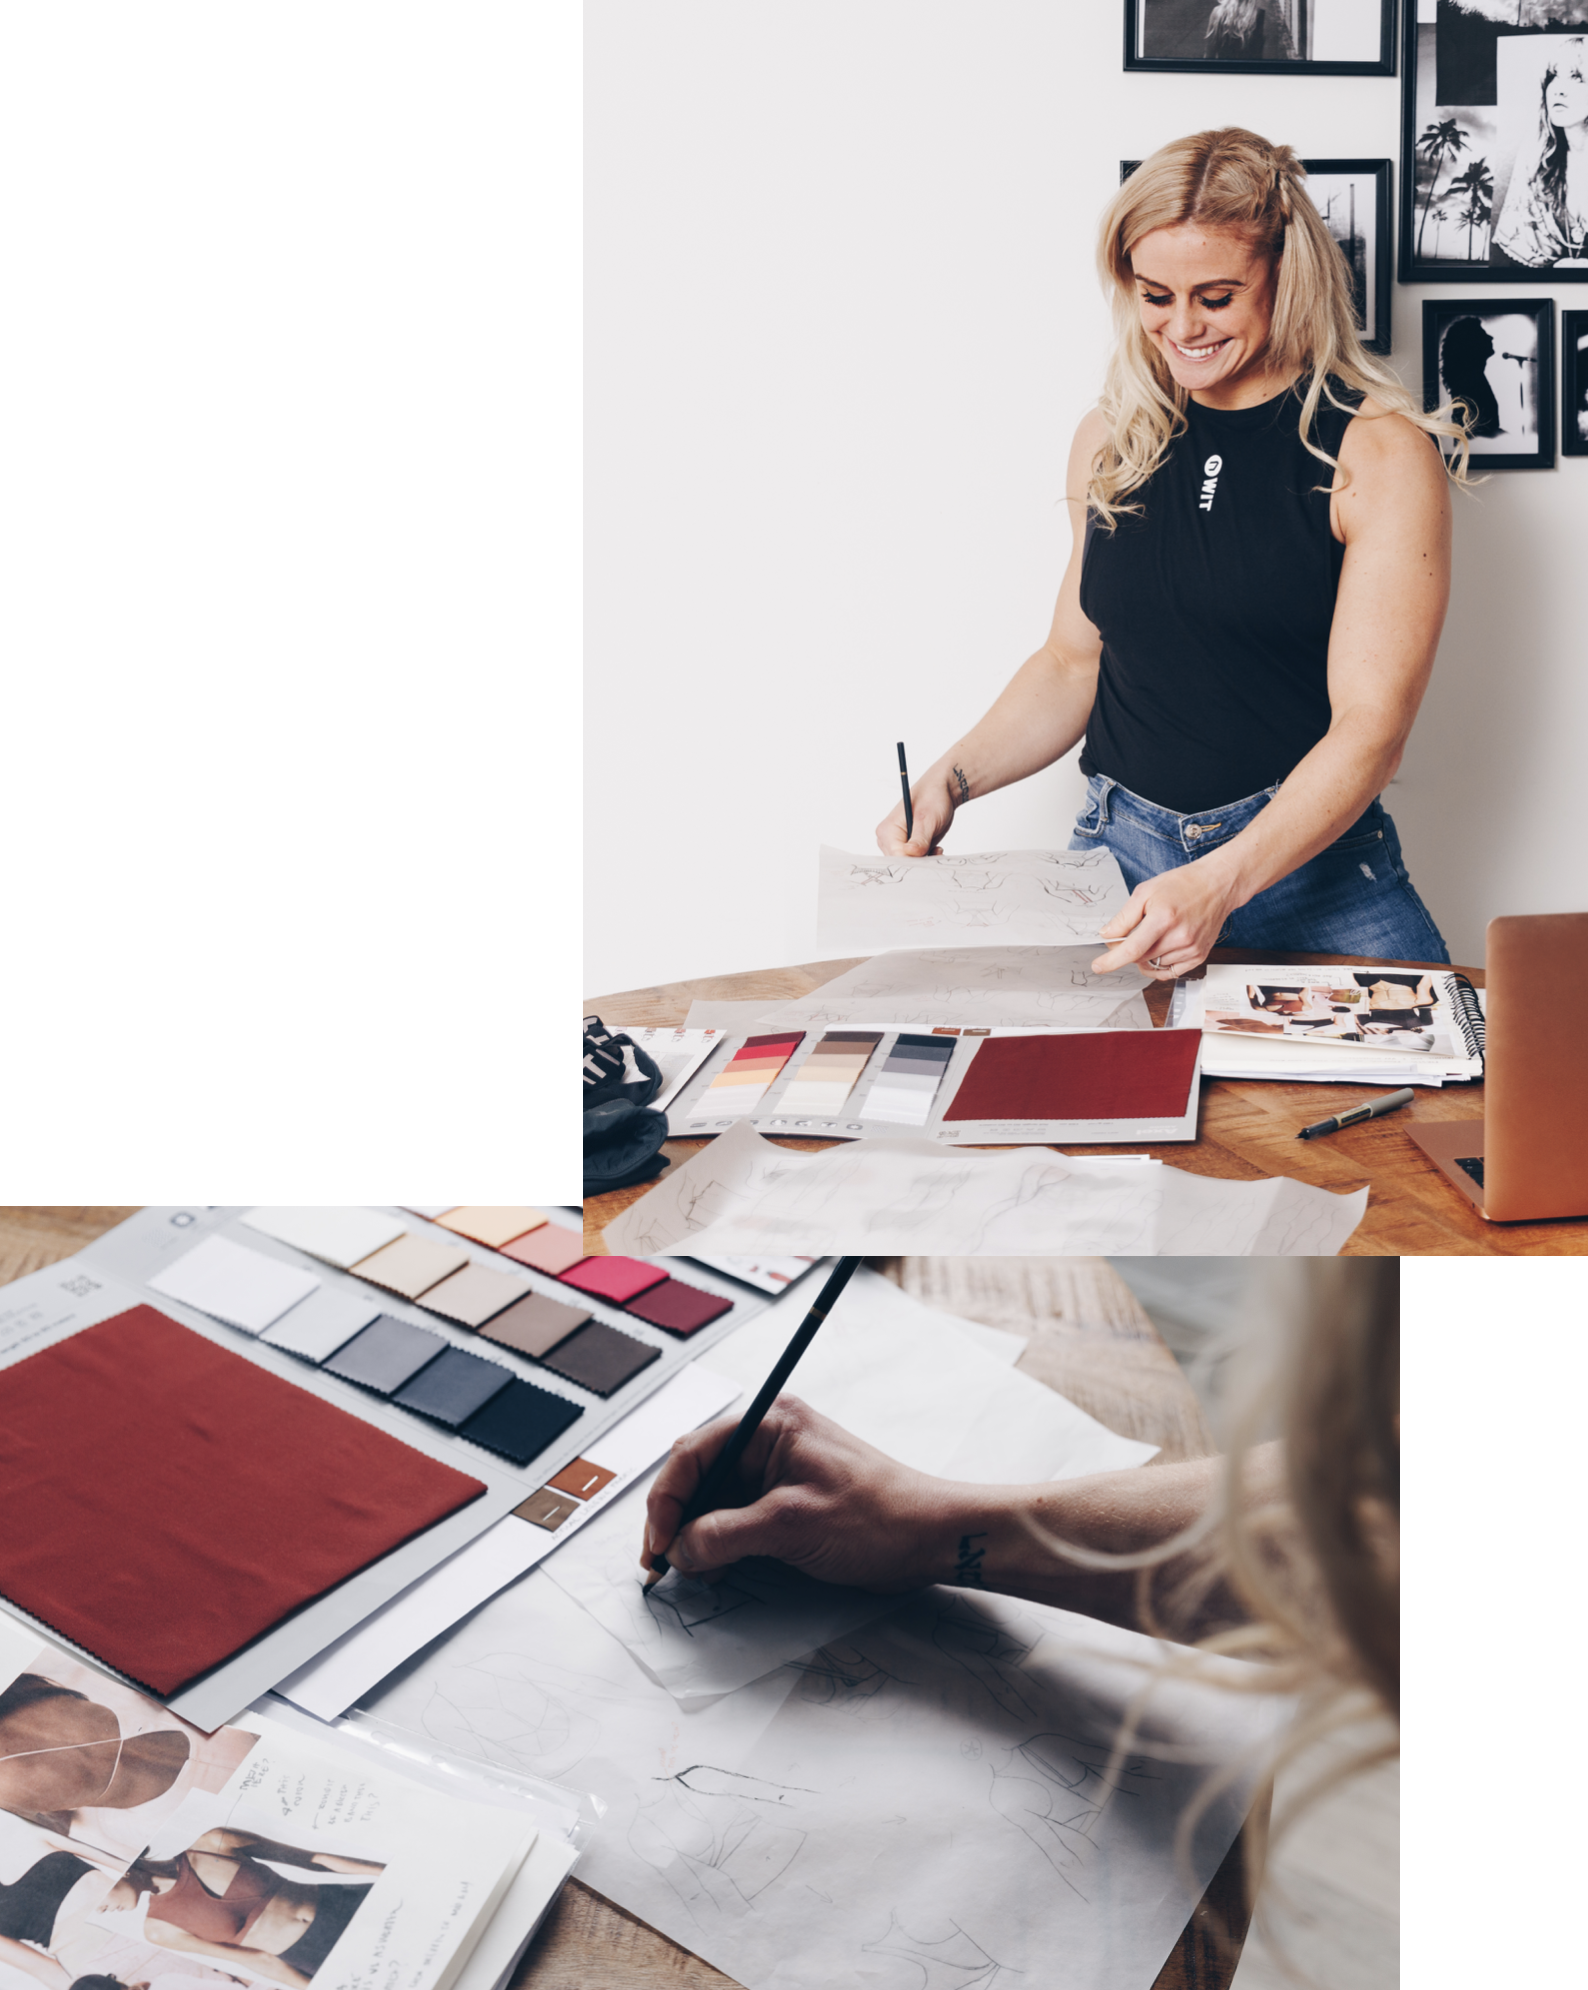 THE SIGMUNDSDÓTTIR COLLECTION - SIGN UP TO BE THE 1ST TO KNOW